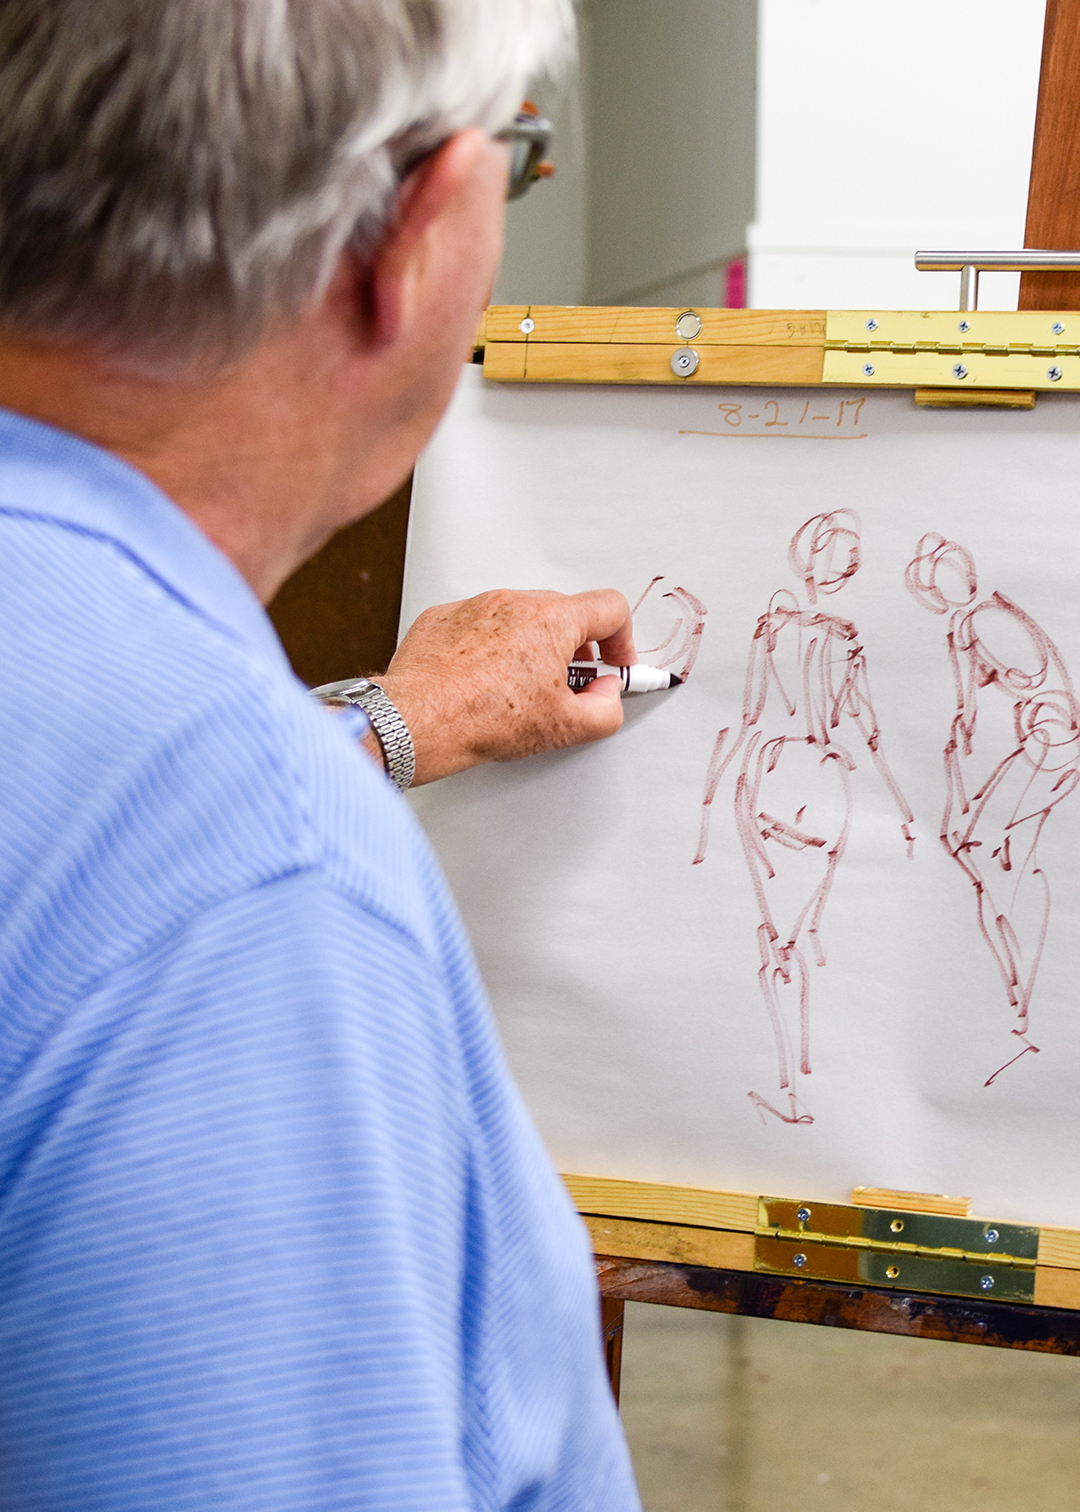 A person draws figures on an easel.